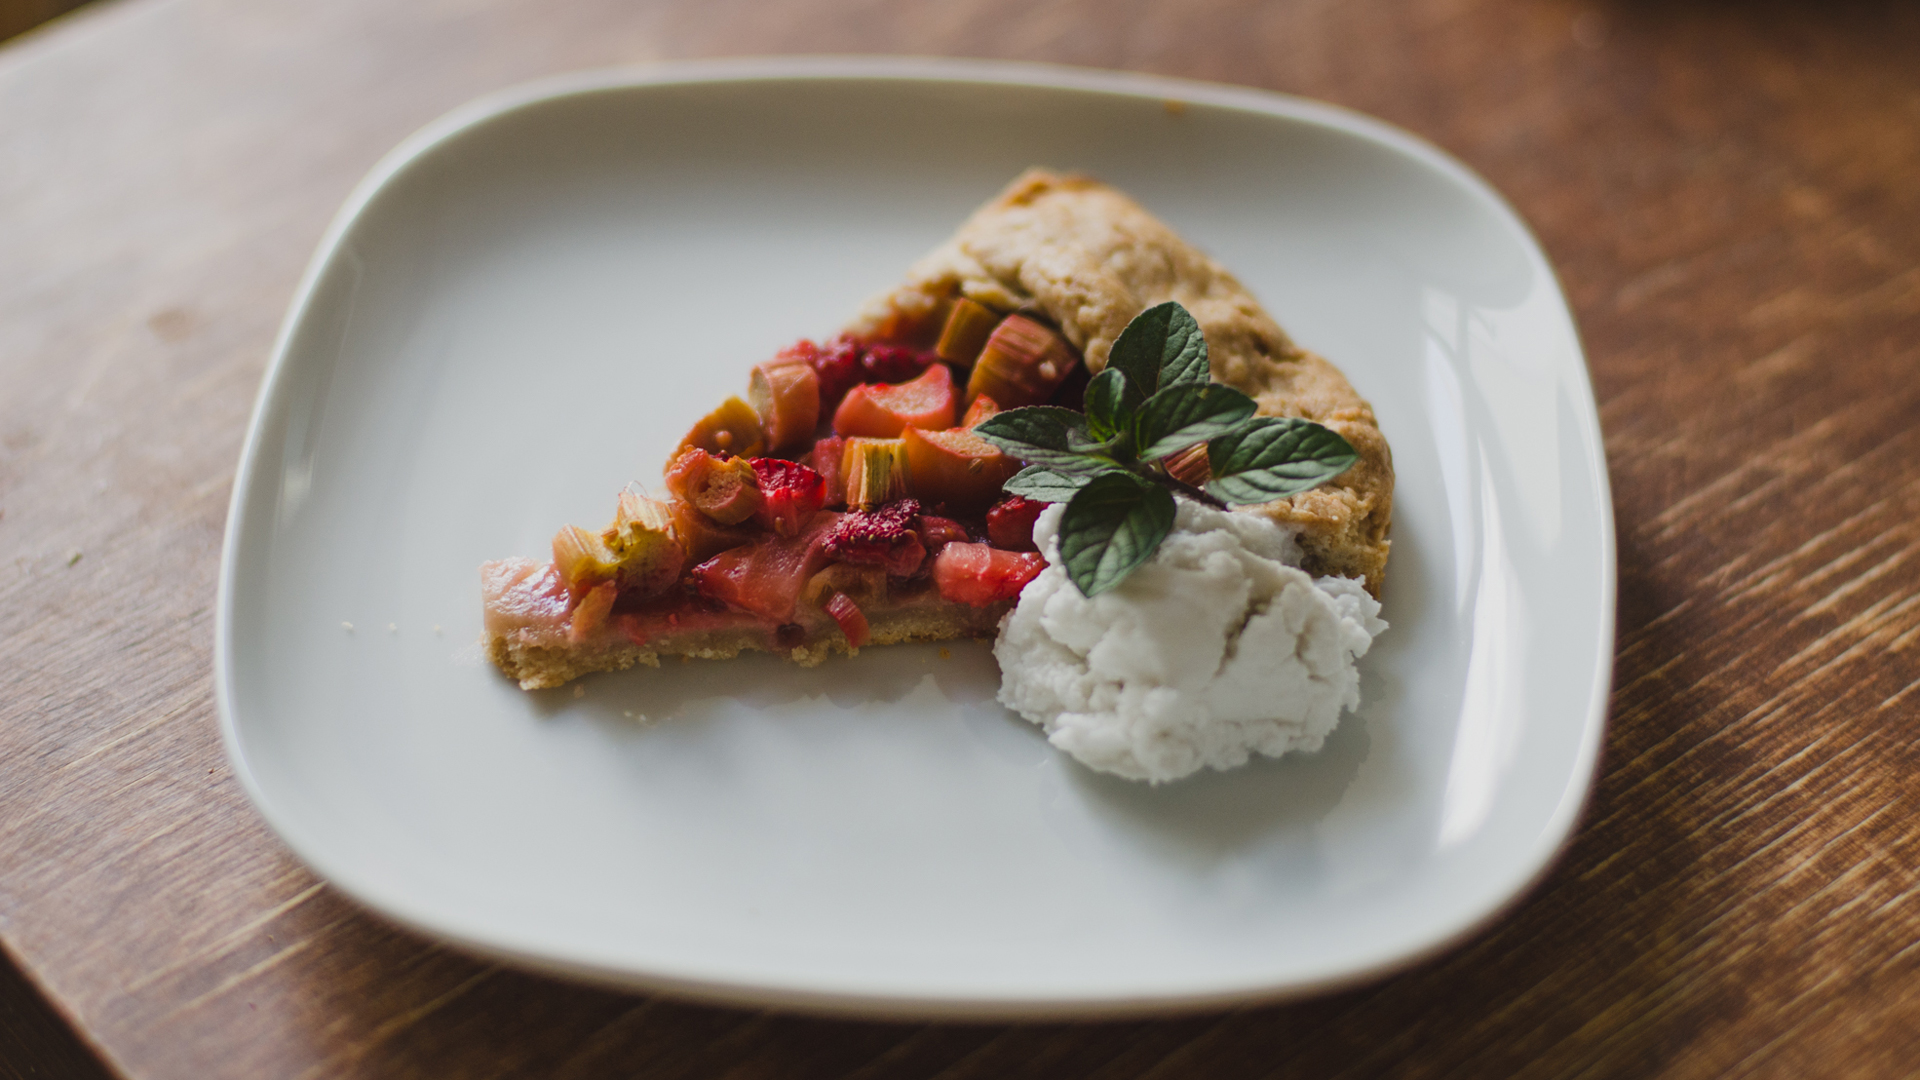 Isabella Paulsen prepares Fructopia's recipe for Rhubarb and Strawberry Galette.